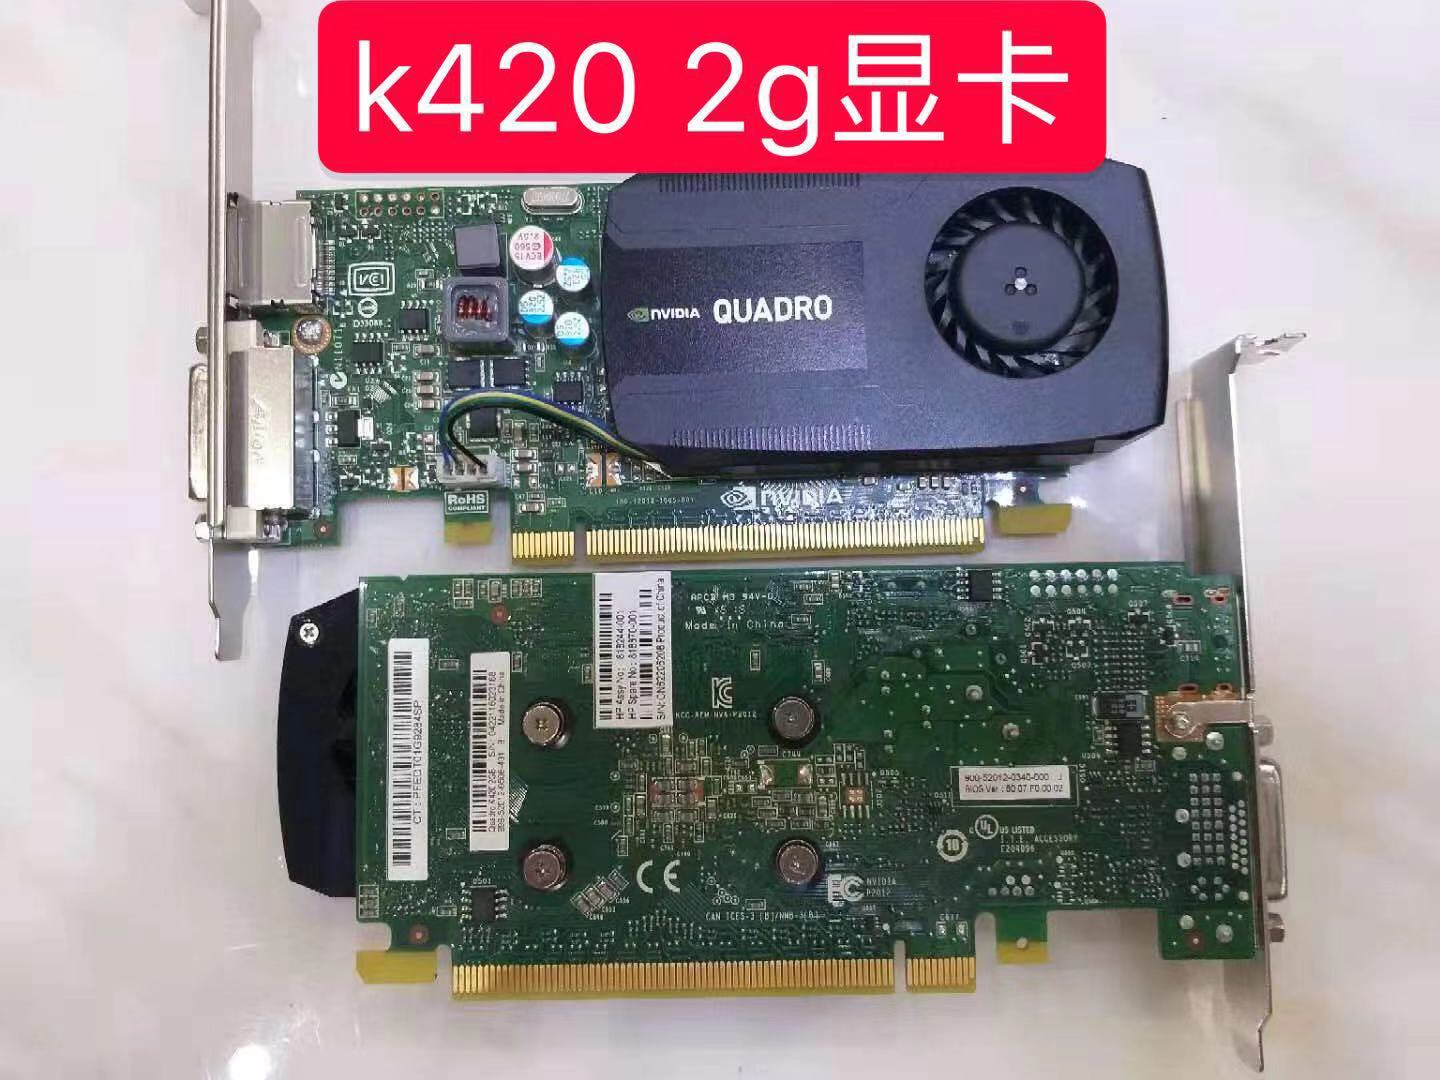 Original Quadro K420 2G professional graphics card K420 graphics card drawing card design graphics card HP818244-001